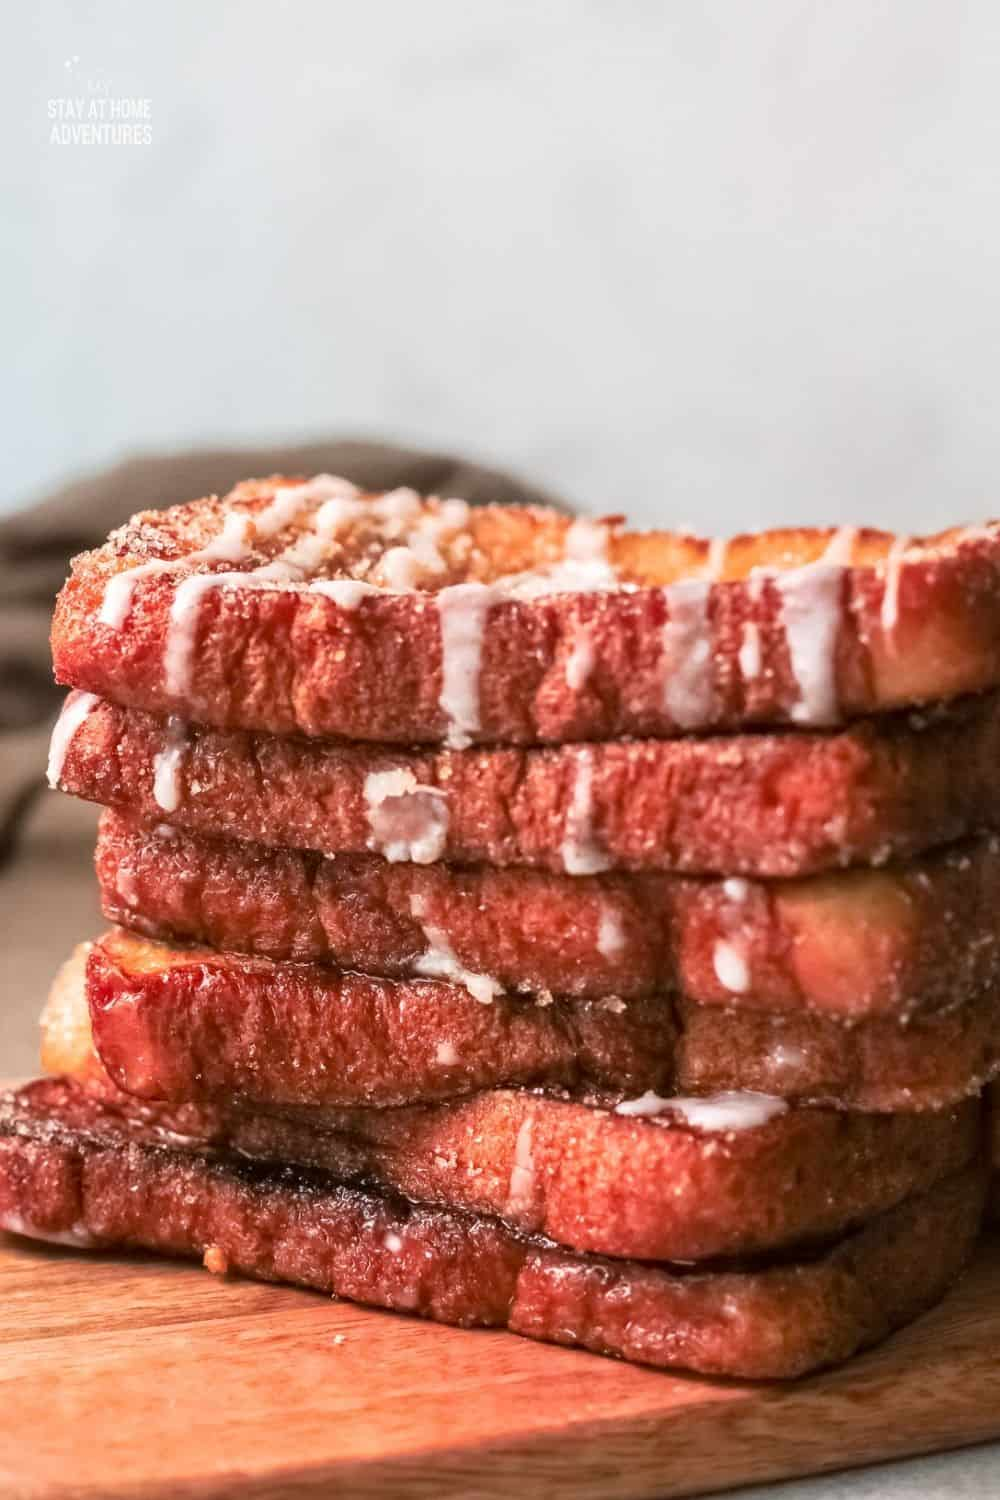 These sweet-smelling Churro French Toasts make you wake up fully after having these for breakfast. They can be a great snack, too. via @mystayathome